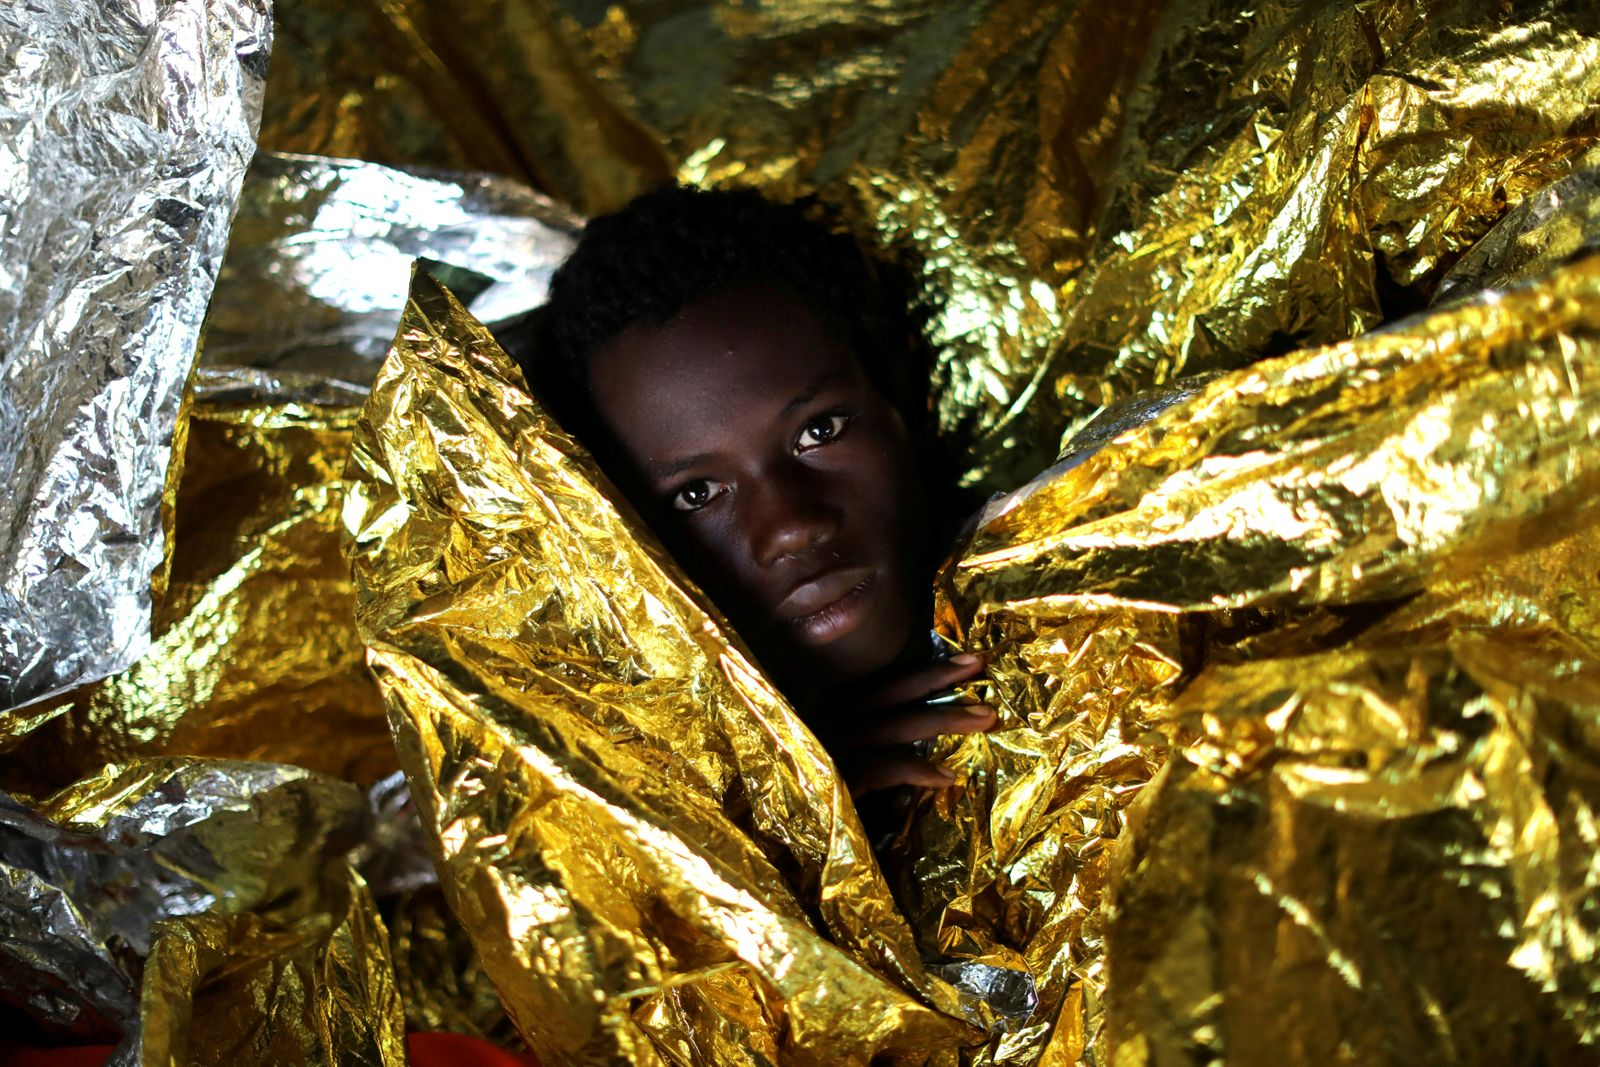 FILE PHOTO:Mamahba, 17, from Guinea is covered with thermal blankets aboard the former fishing trawler Golfo Azzurro of the Spanish NGO Proactiva Open Arms following a rescue operation near the coasts of Libya in the central Mediterranean Sea